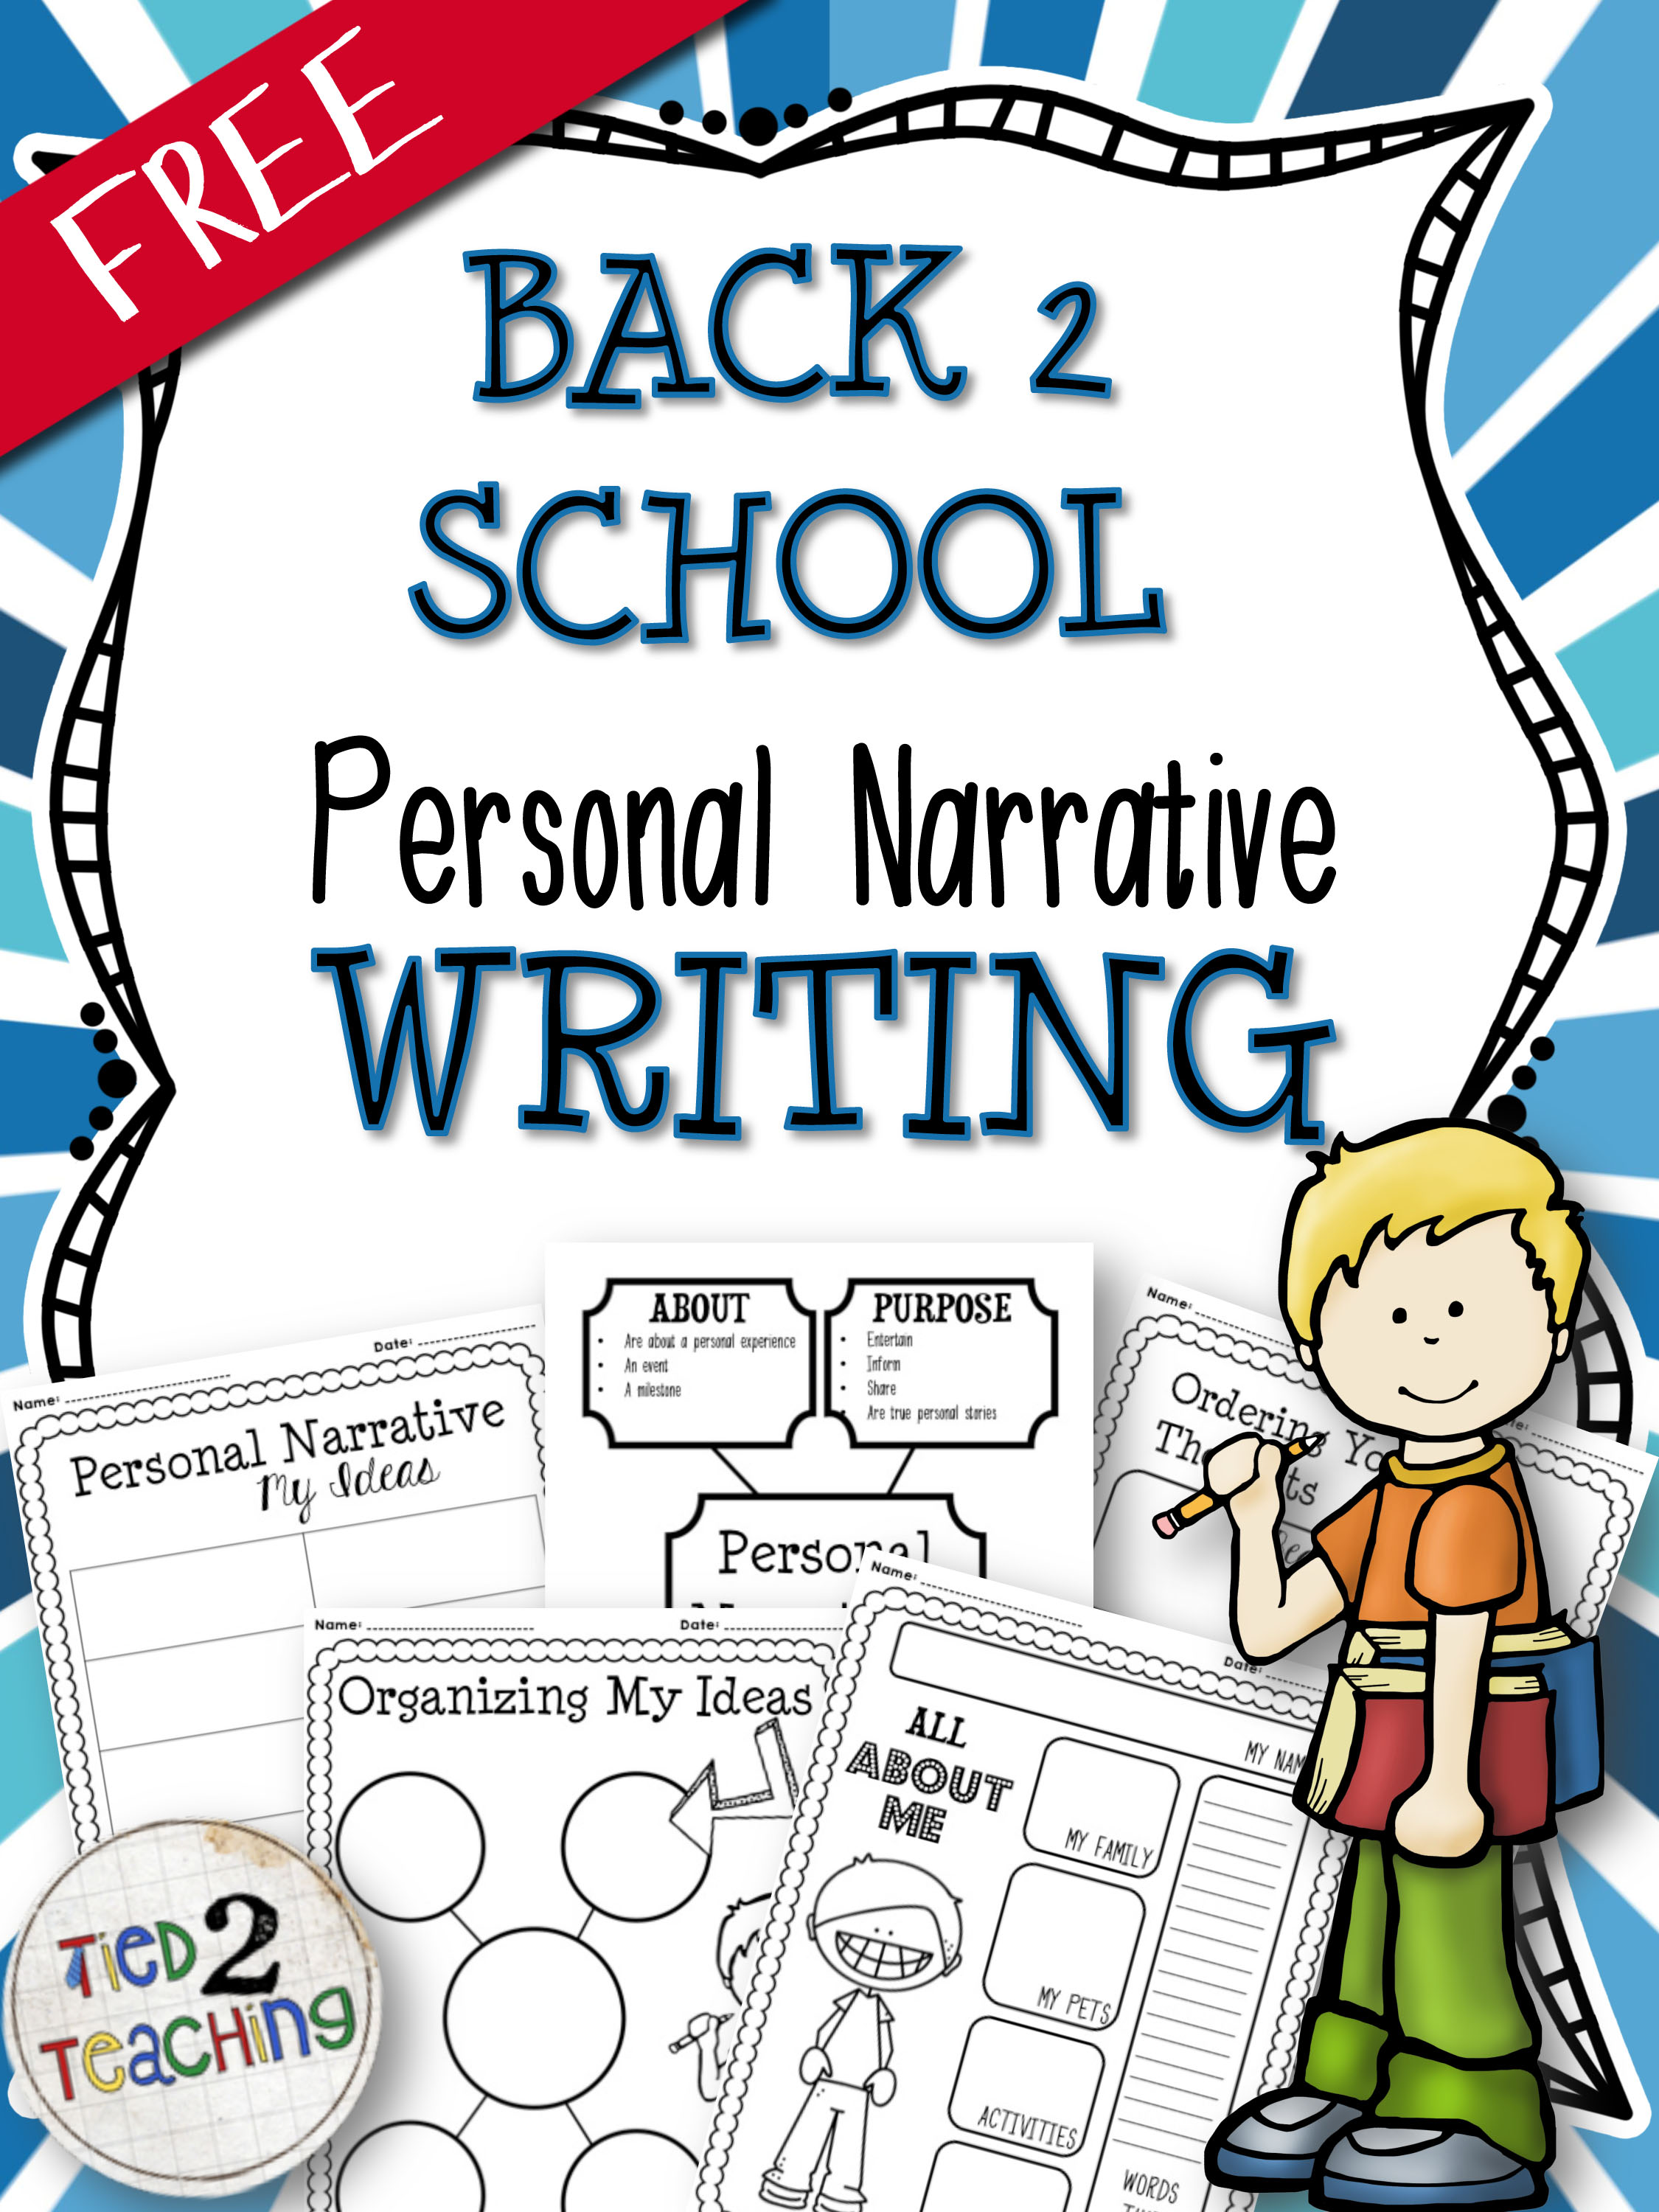 BacktoSchoolPersonalNarrativeWriting-FREE